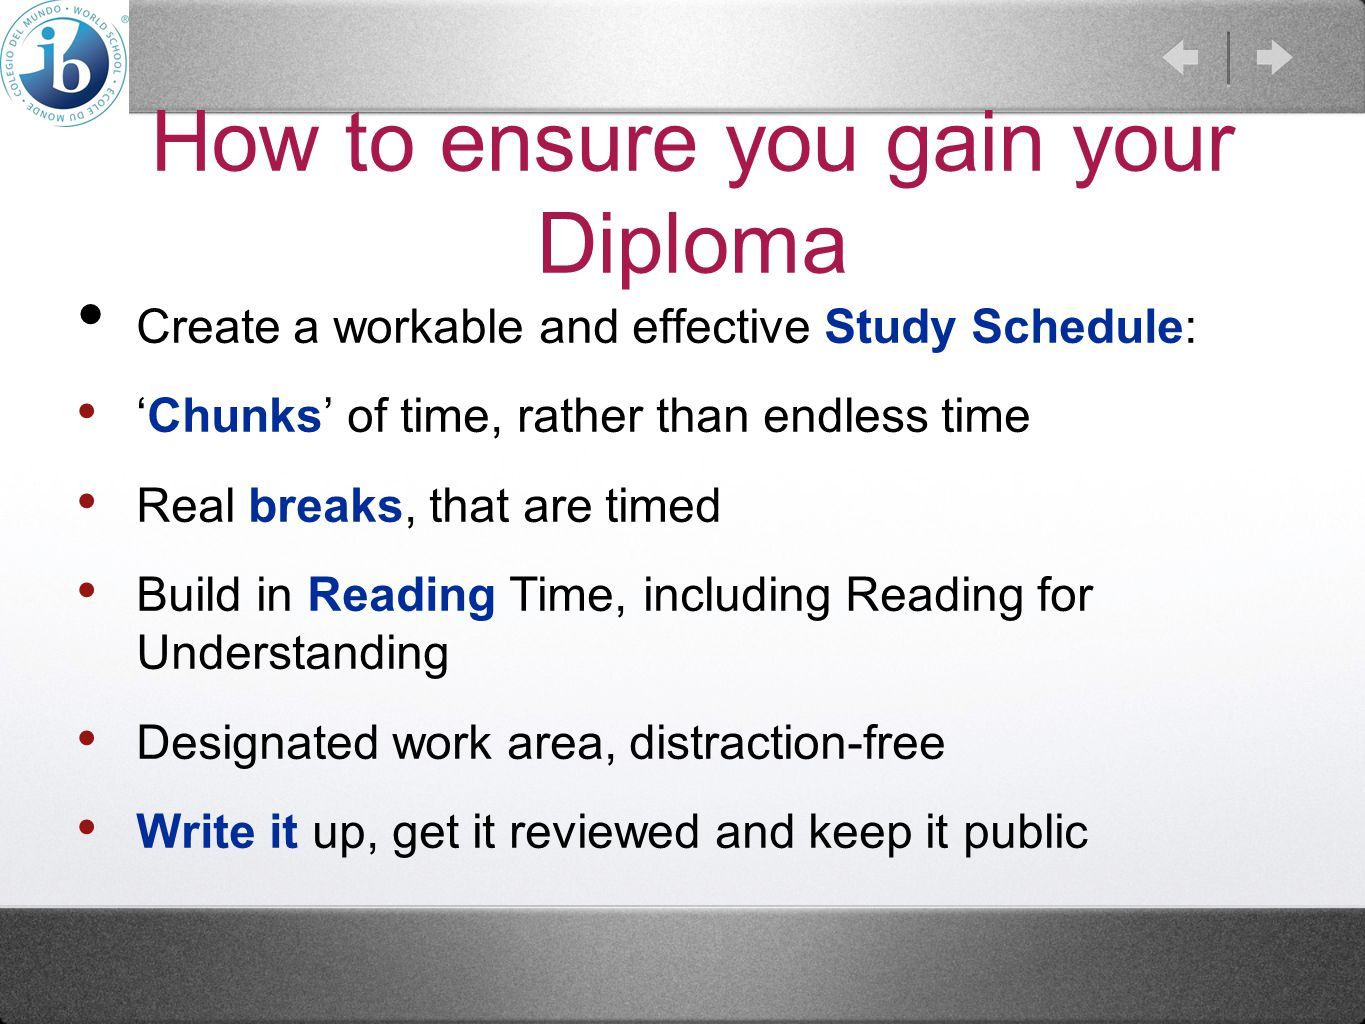 How to ensure you gain your Diploma